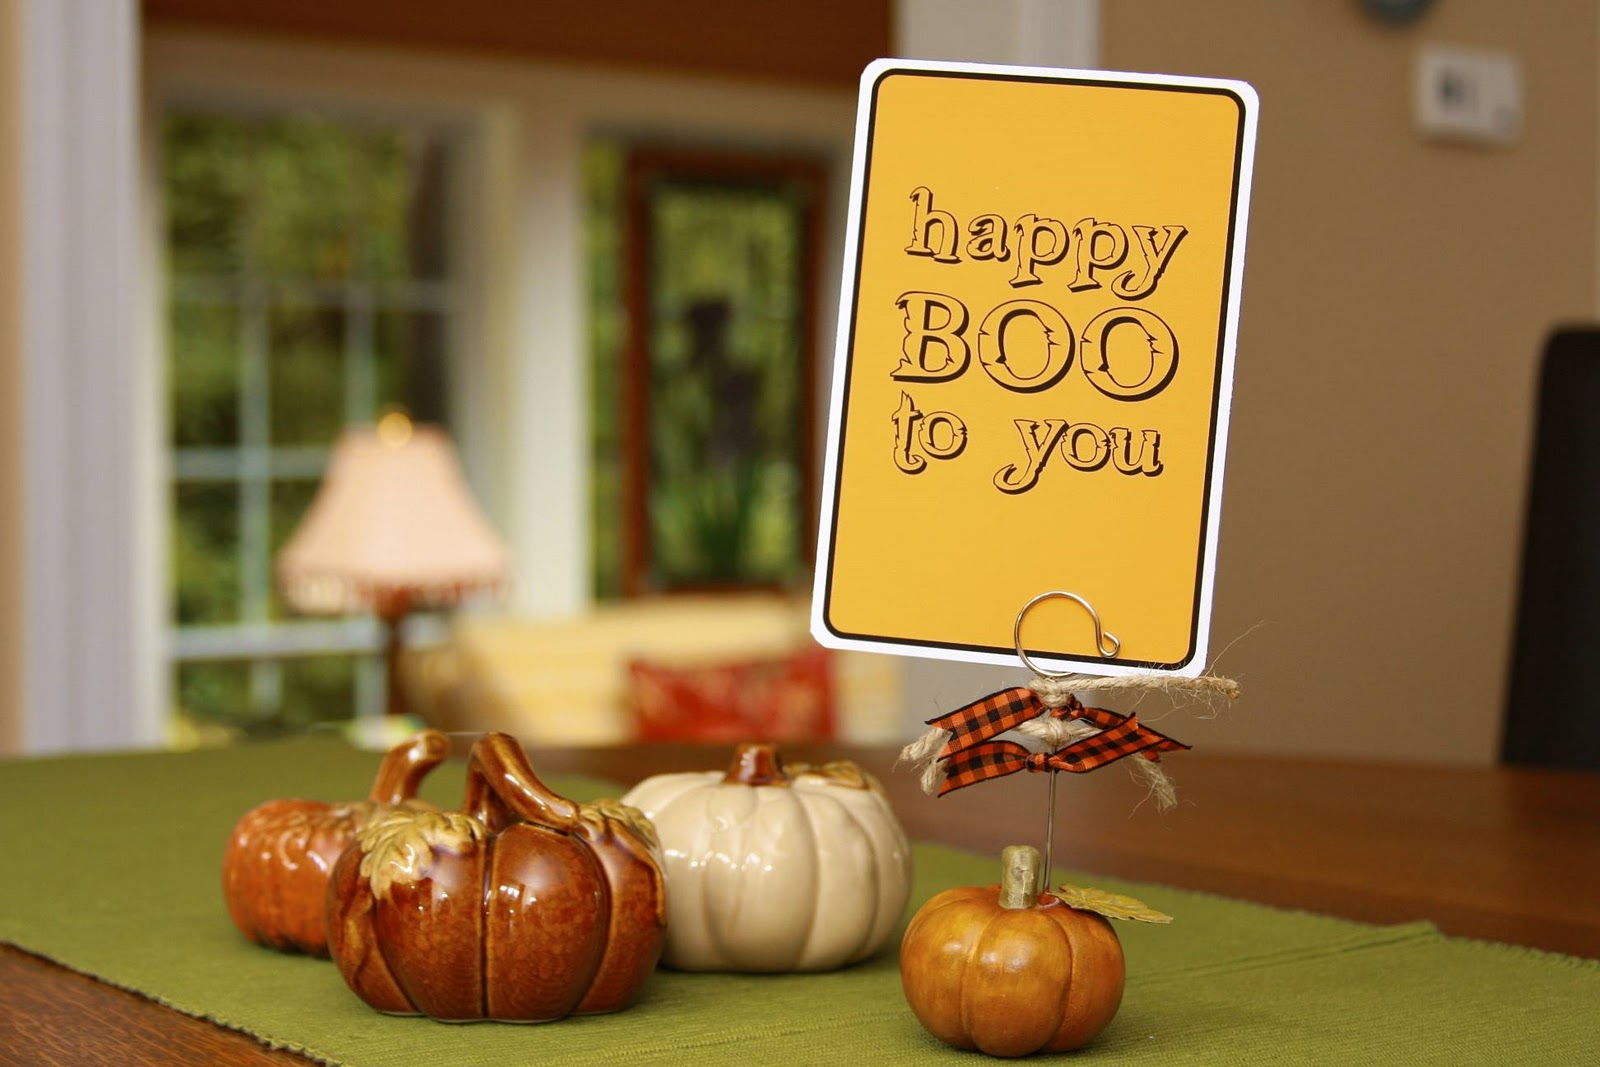 Happy Boo To You Free Download